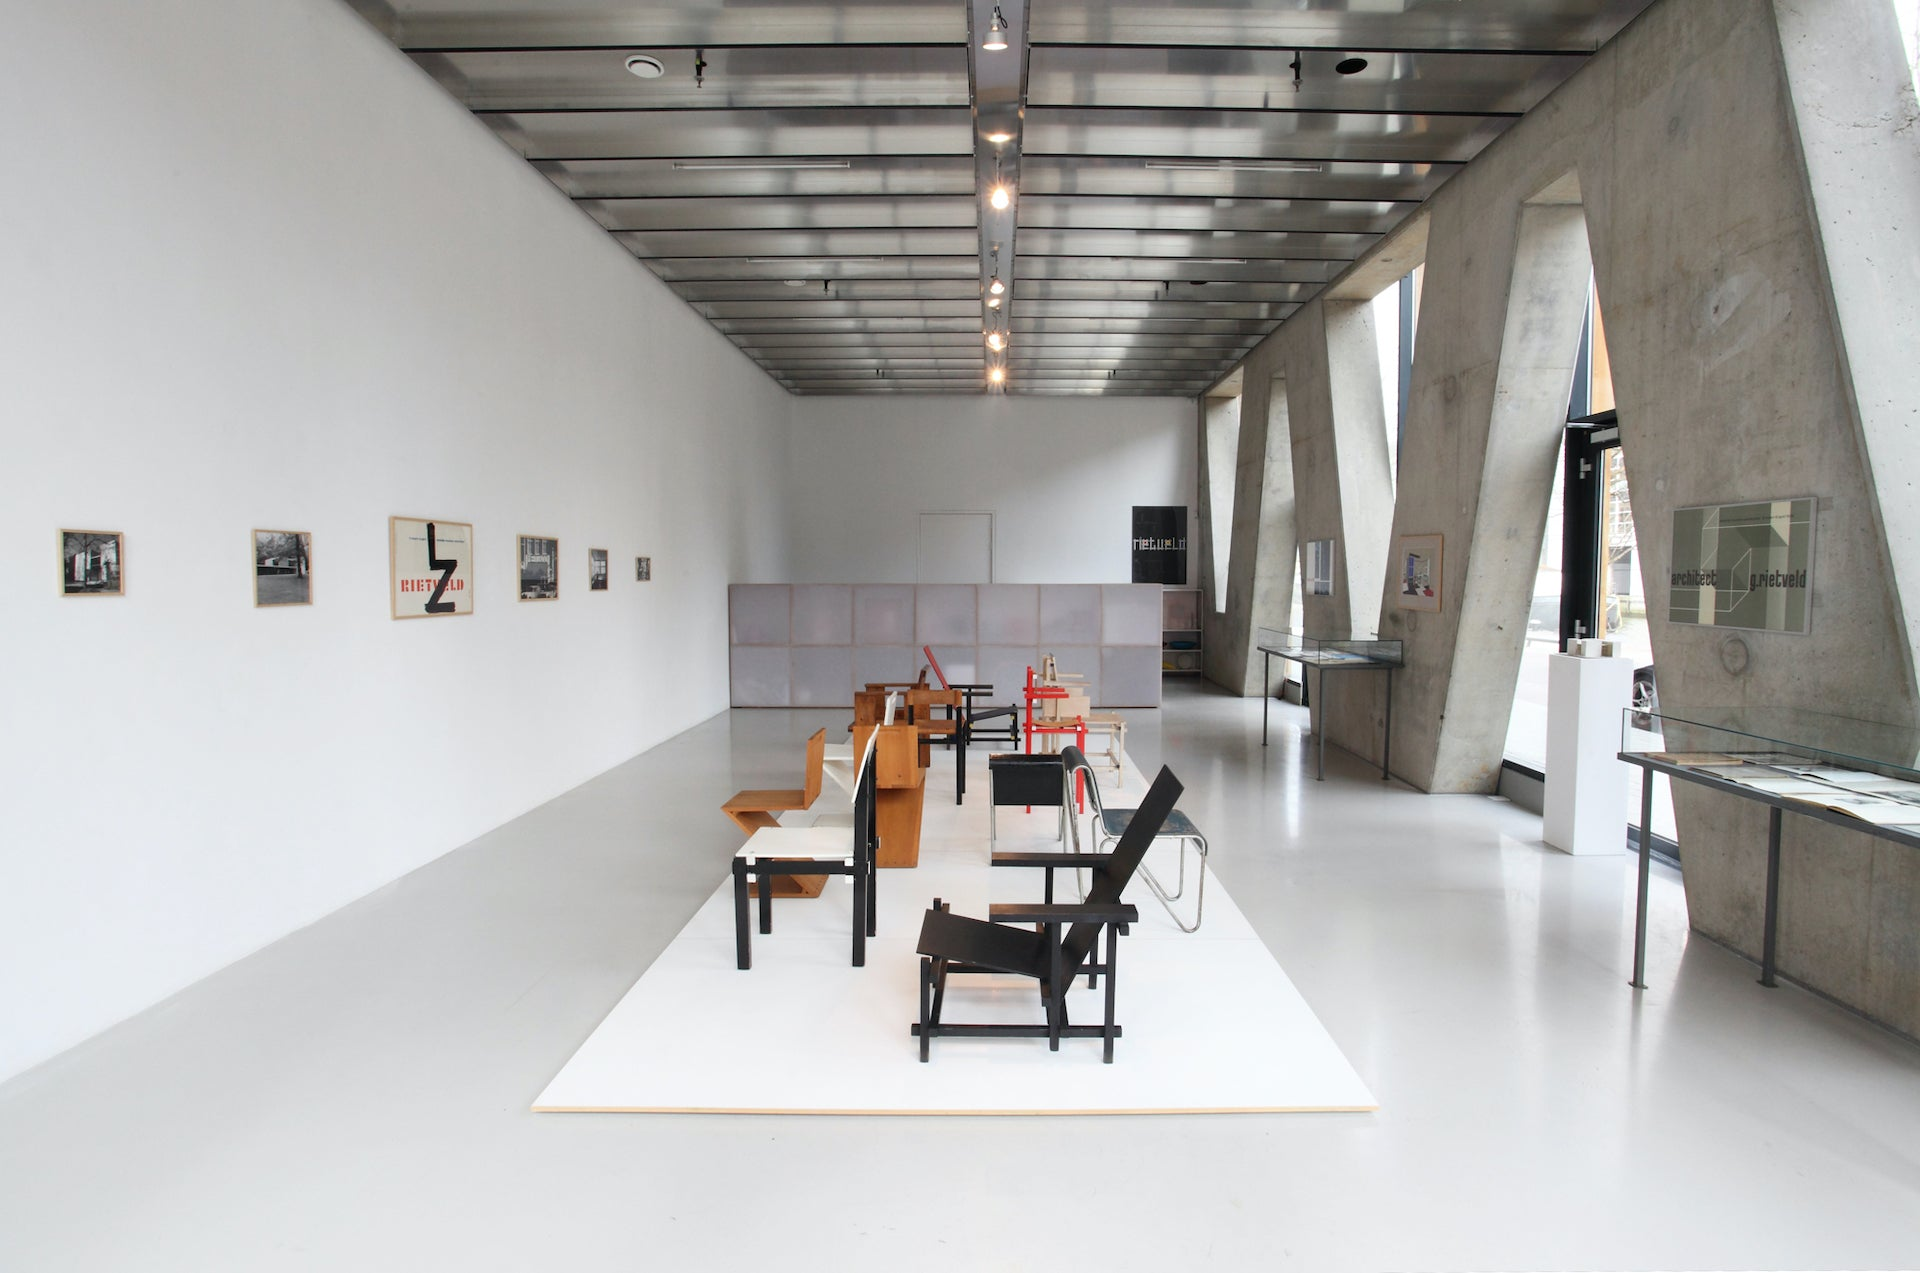 Gerrit Th. Rietveld exhibition at Galerie VIVID, 2013; the first ever Rietveld exhibition in a Dutch gallery. Photo © Galerie VIVID